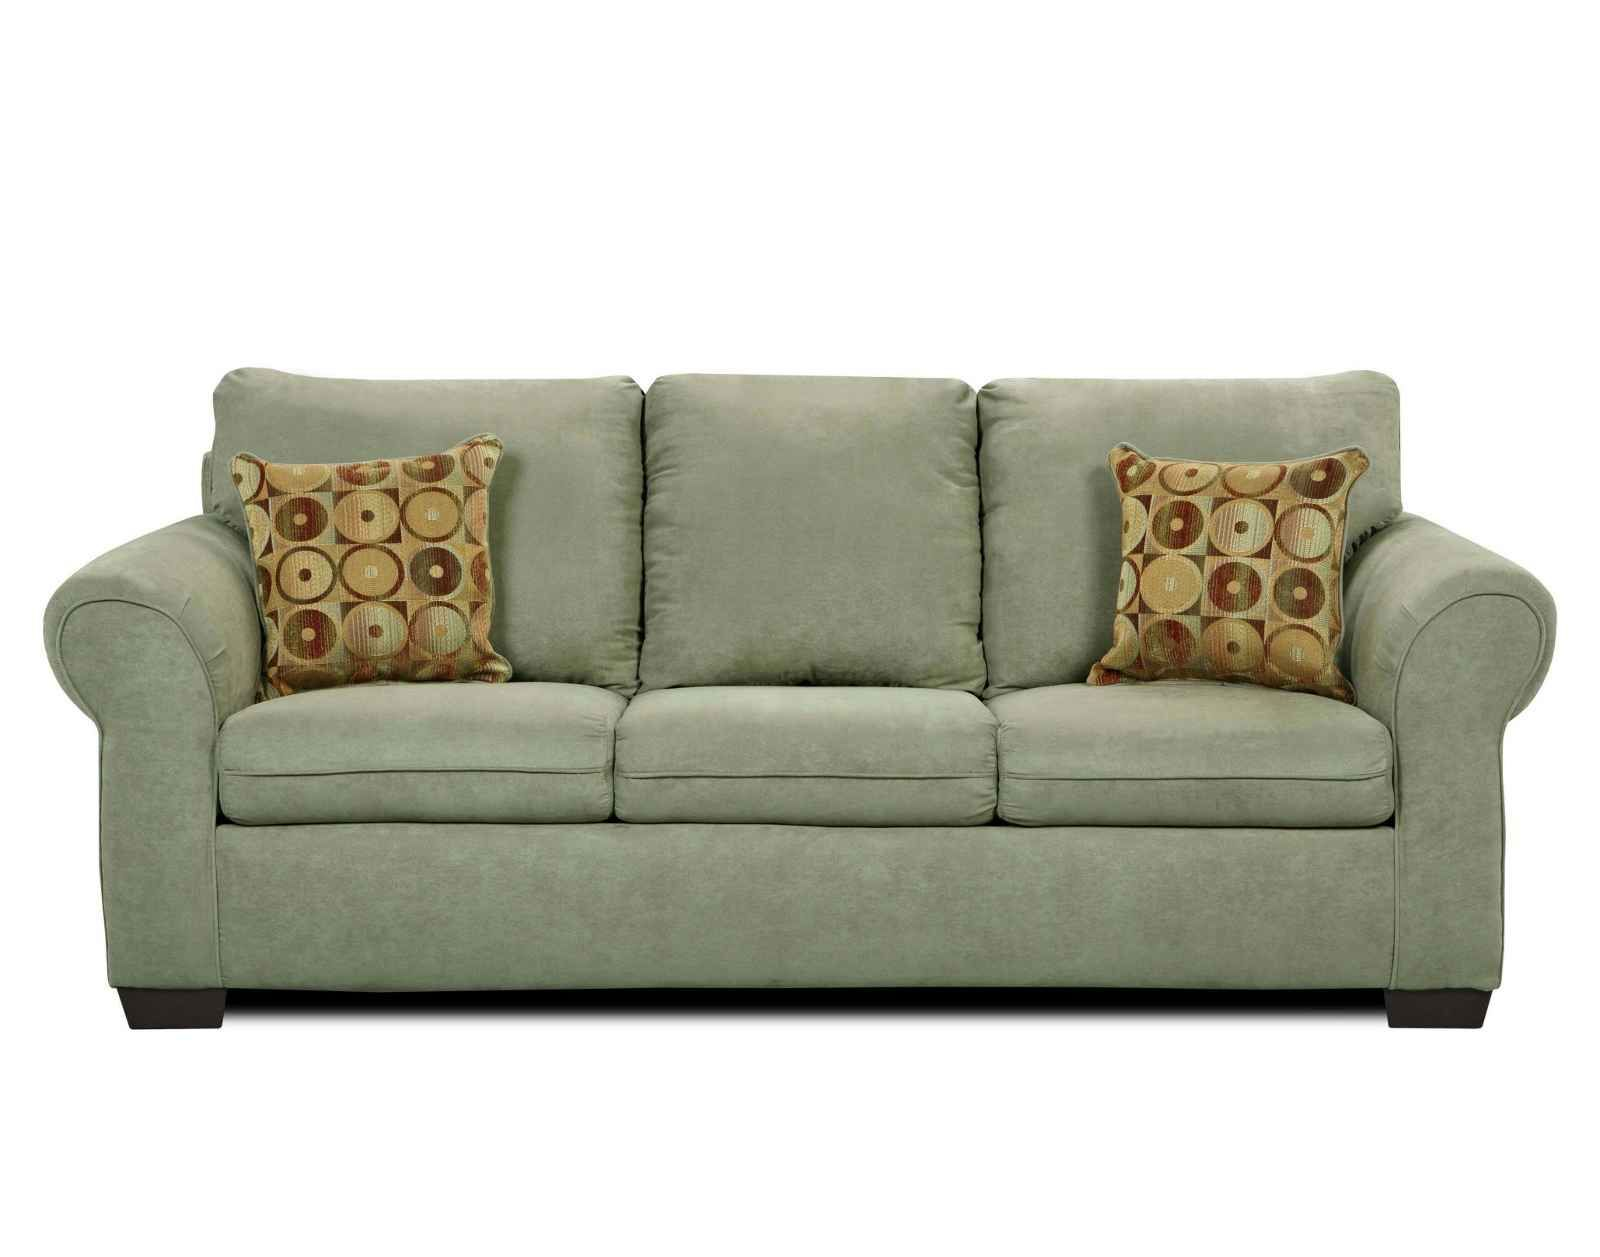 incredible ashley leather sofa and loveseat gallery-Lovely ashley Leather sofa and Loveseat Design